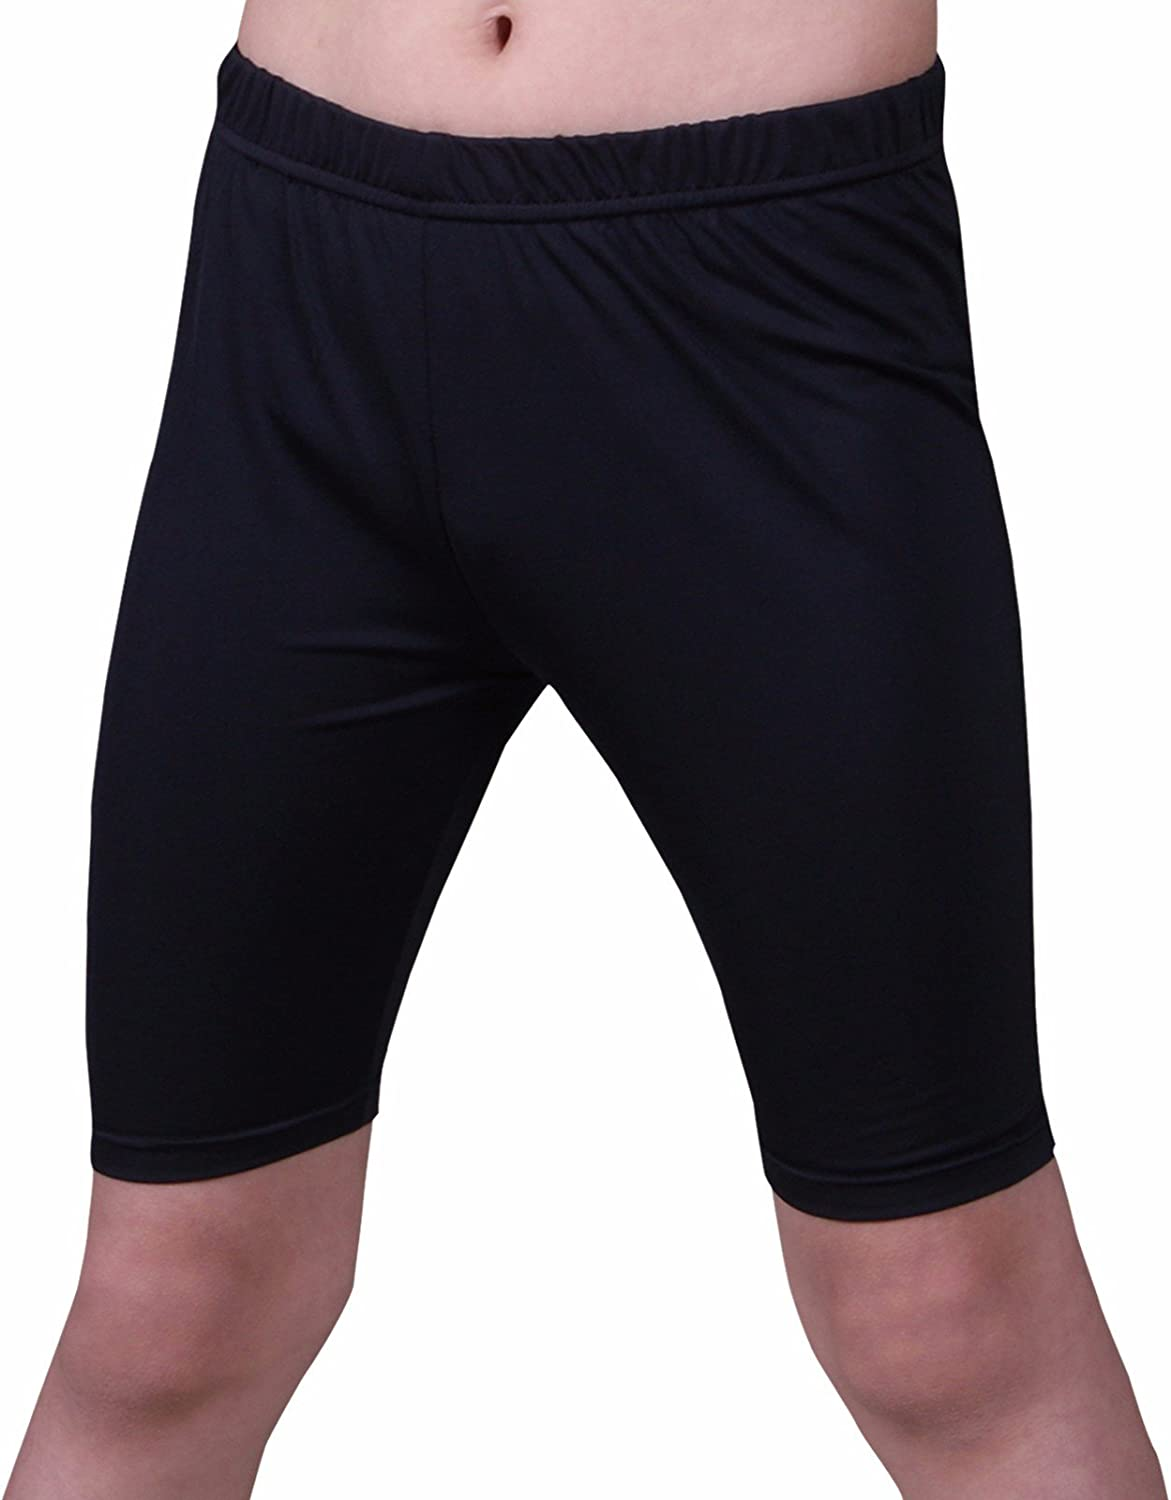 Henri maurice Kids Compression Shorts Underwear Youth Boys Spandex Base Layer Bottom Pants FK: Clothing